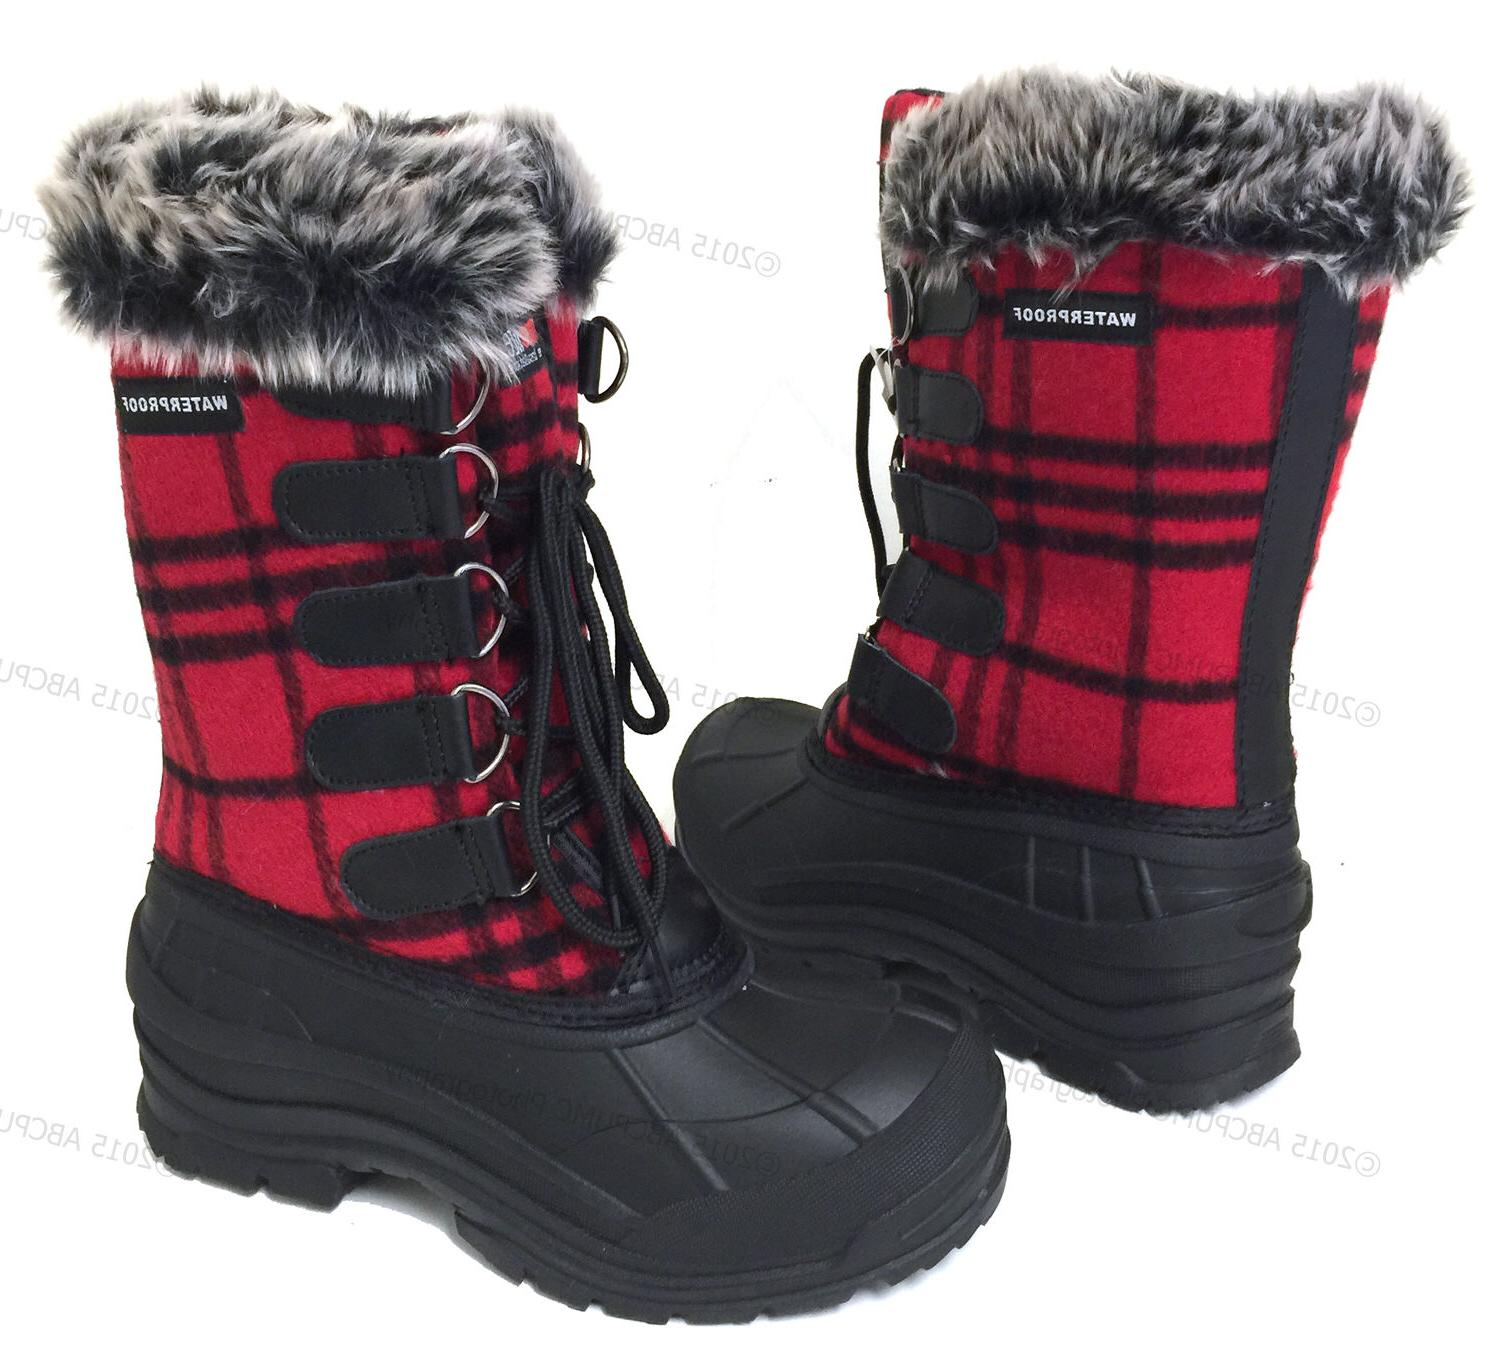 Womens Winter Plaid Fur Warm Waterproof Hiking Snow